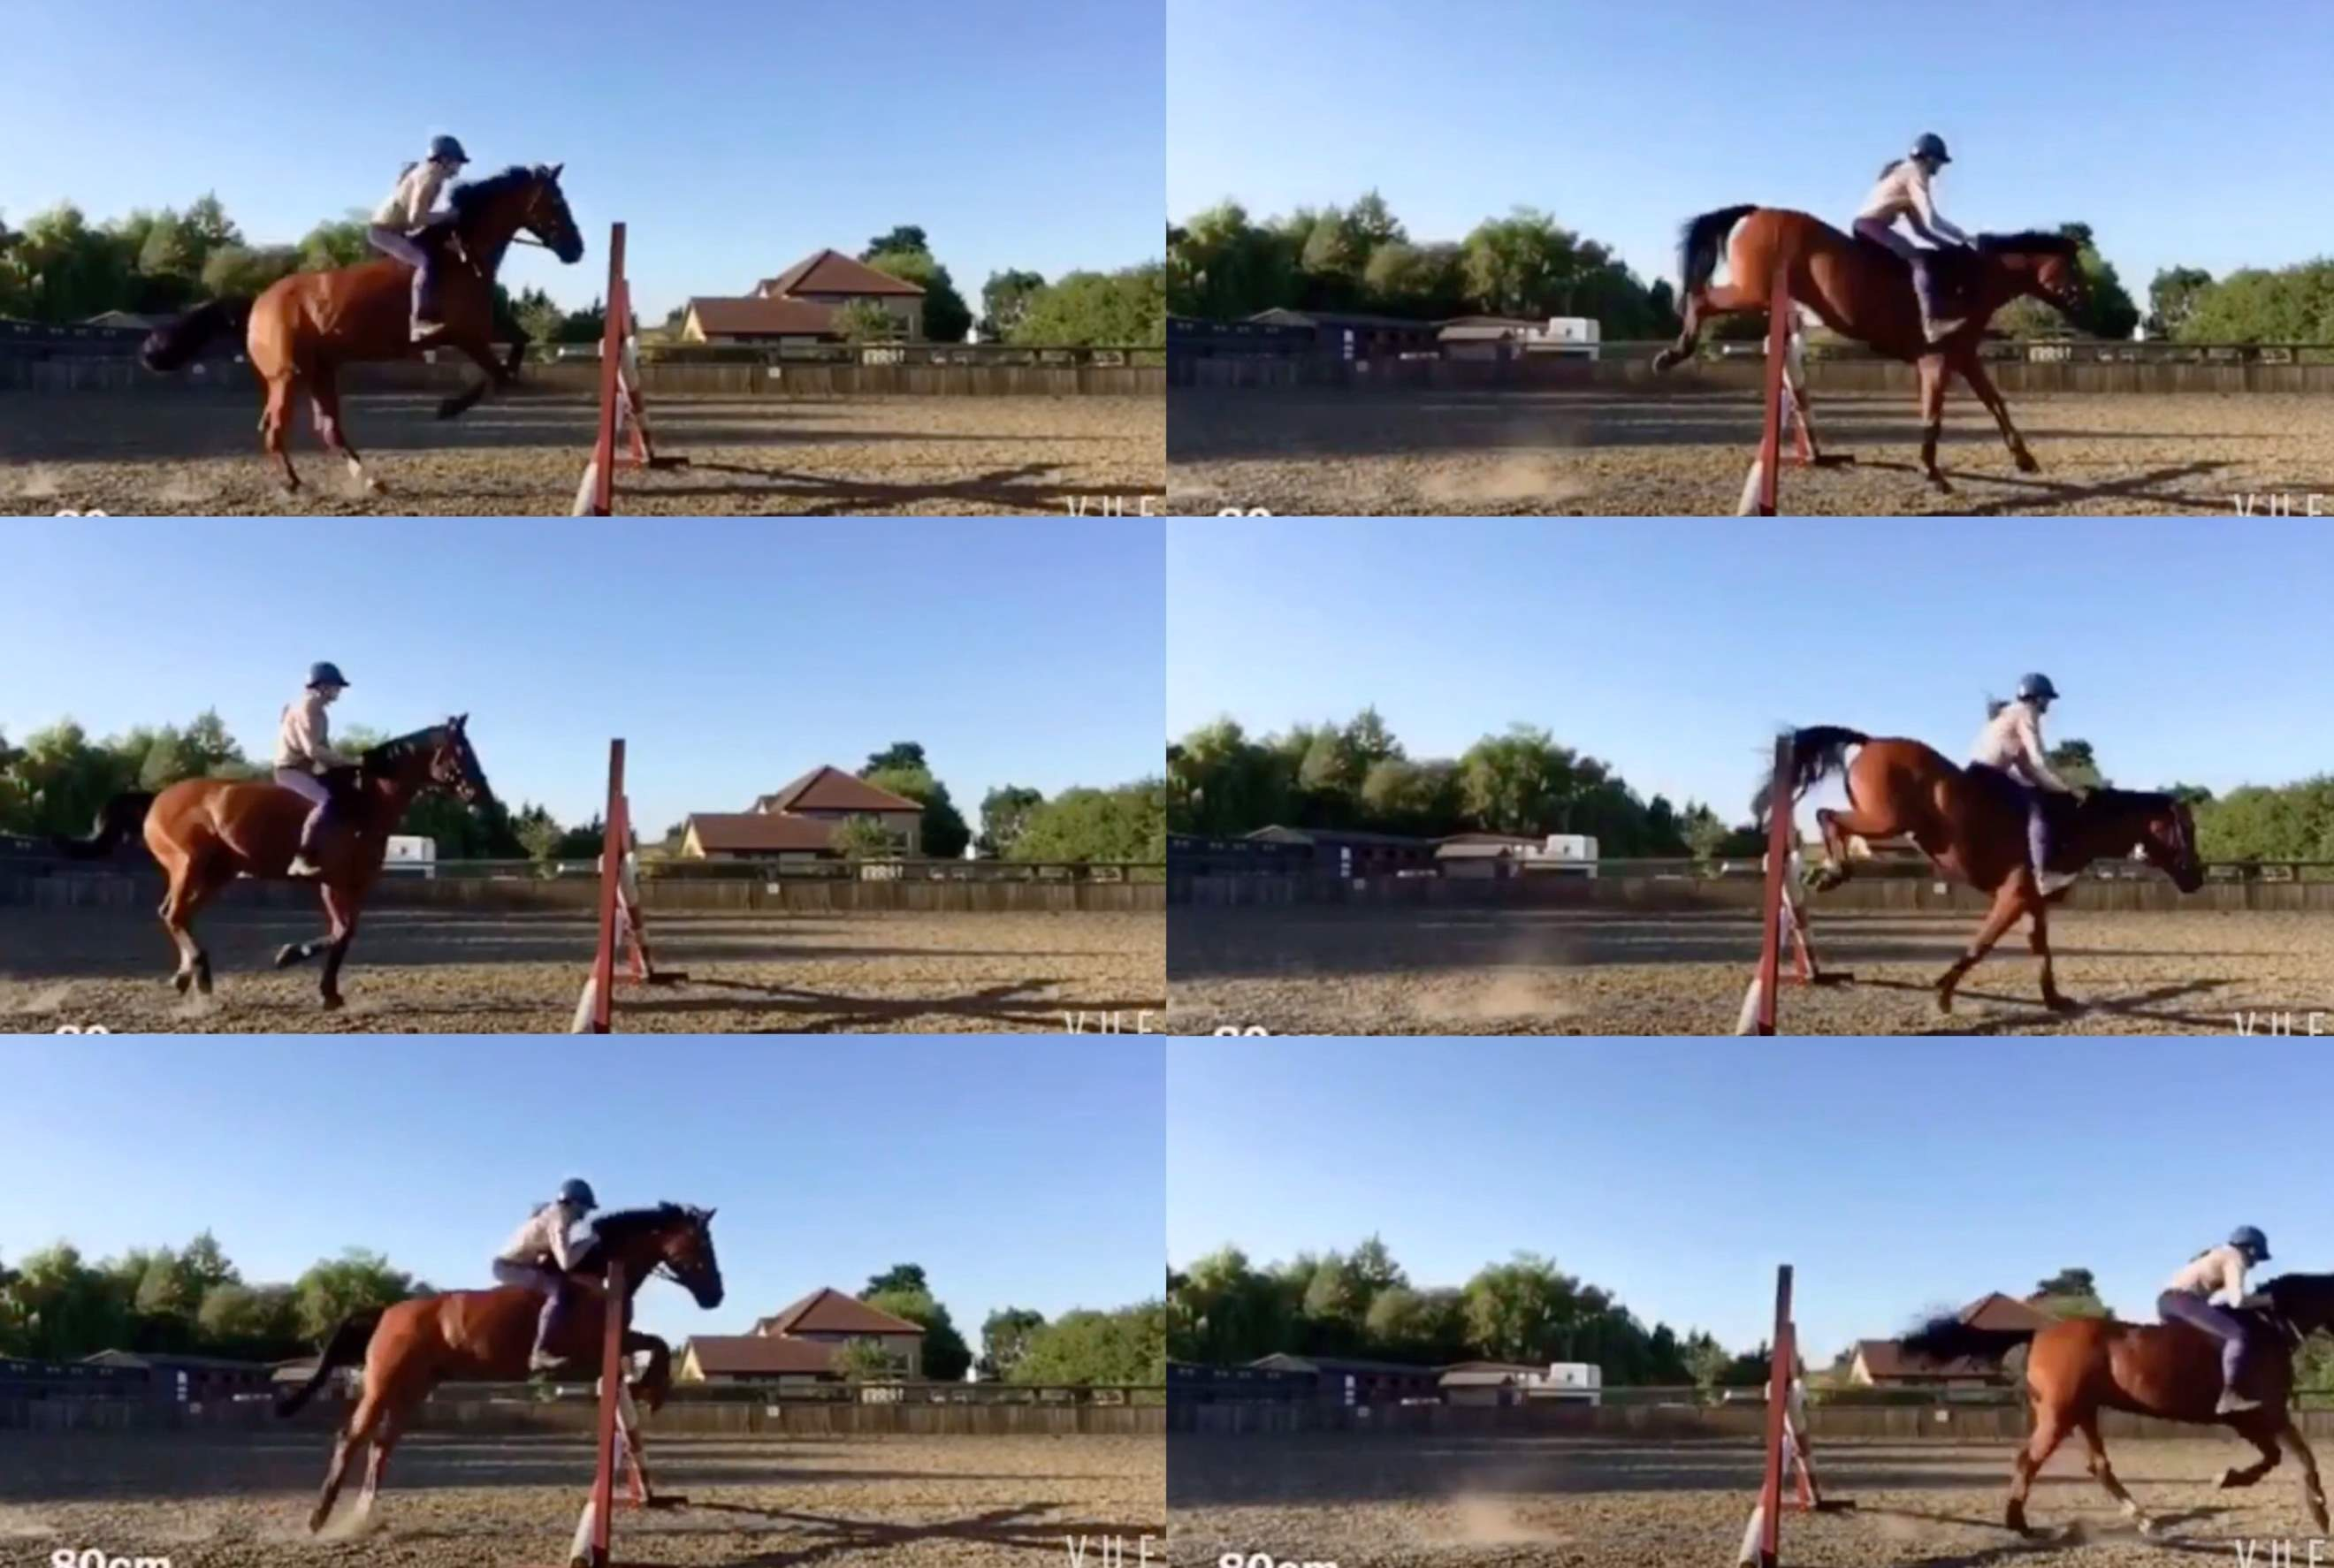 How Does The Jump Of A Horse Affect Its Performance In Showjumping Competitions